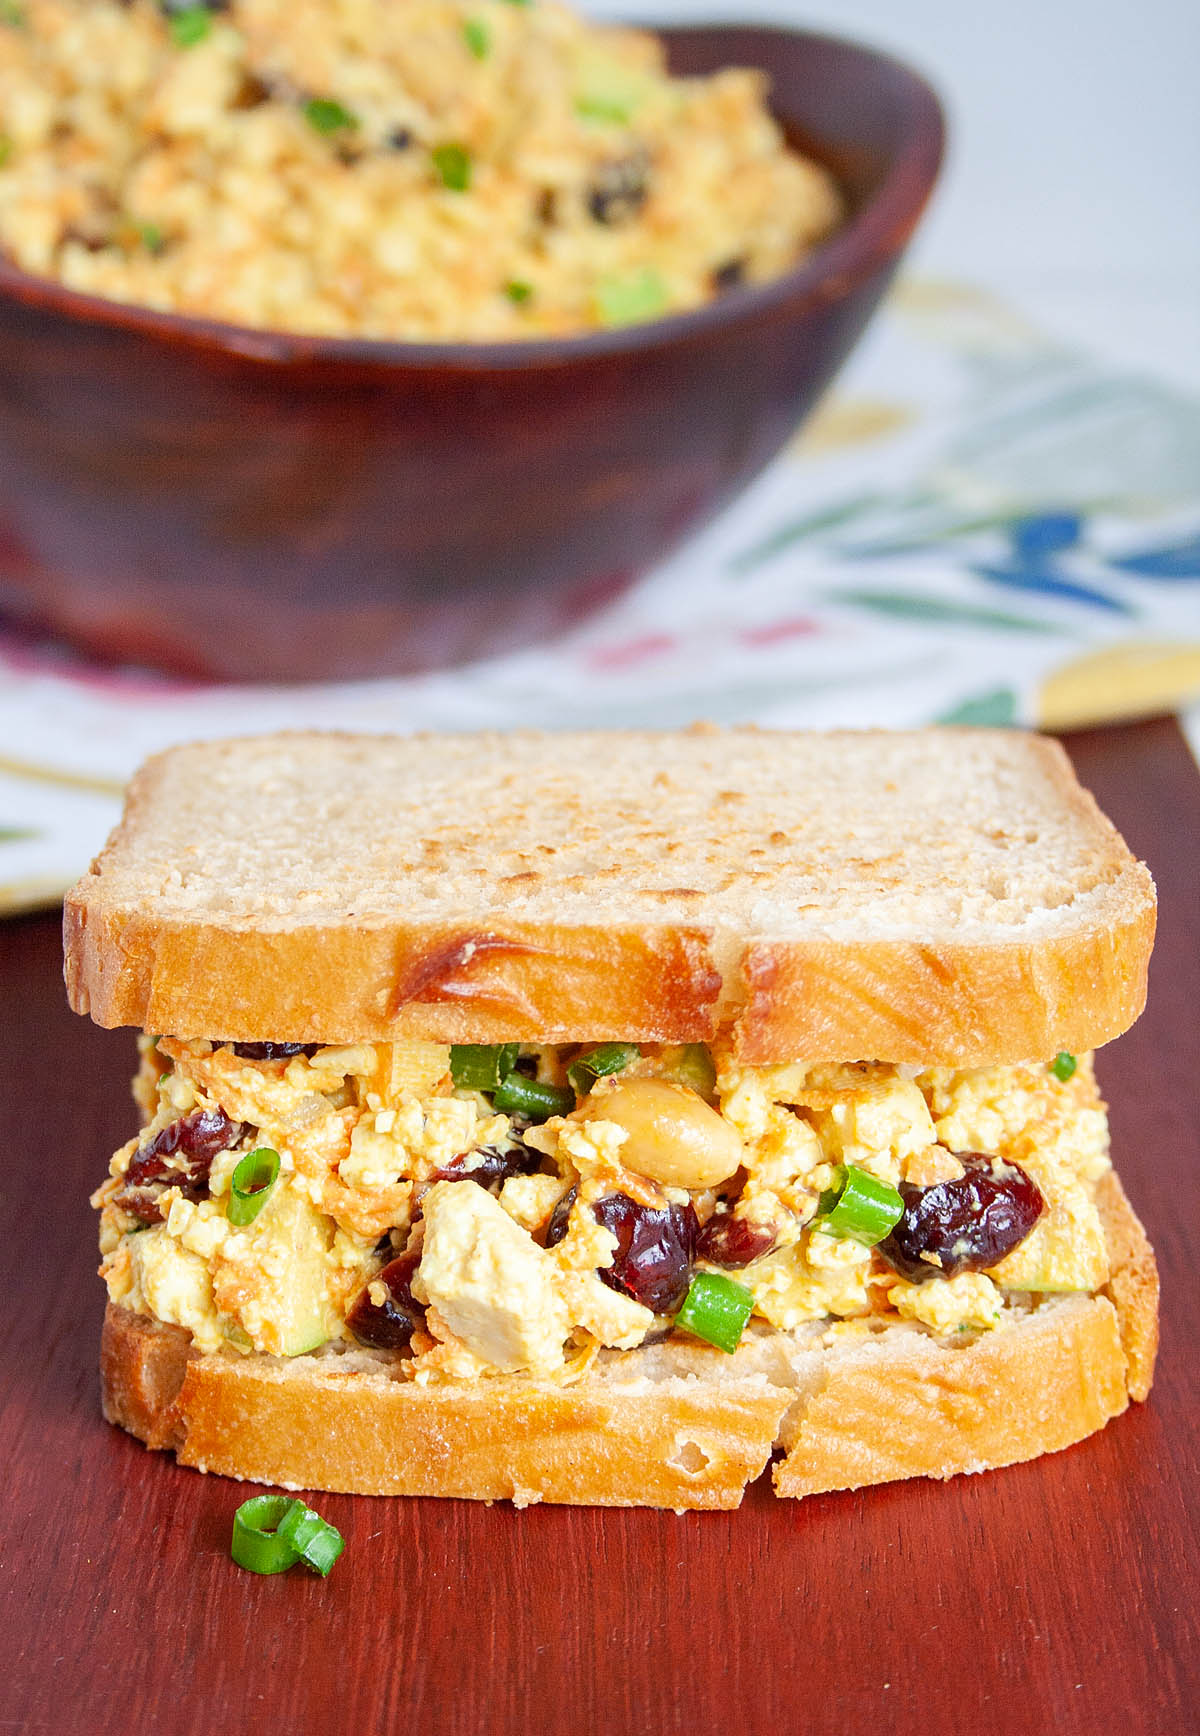 Curried Tofu Salad sandwich close up with a bowlful in background.